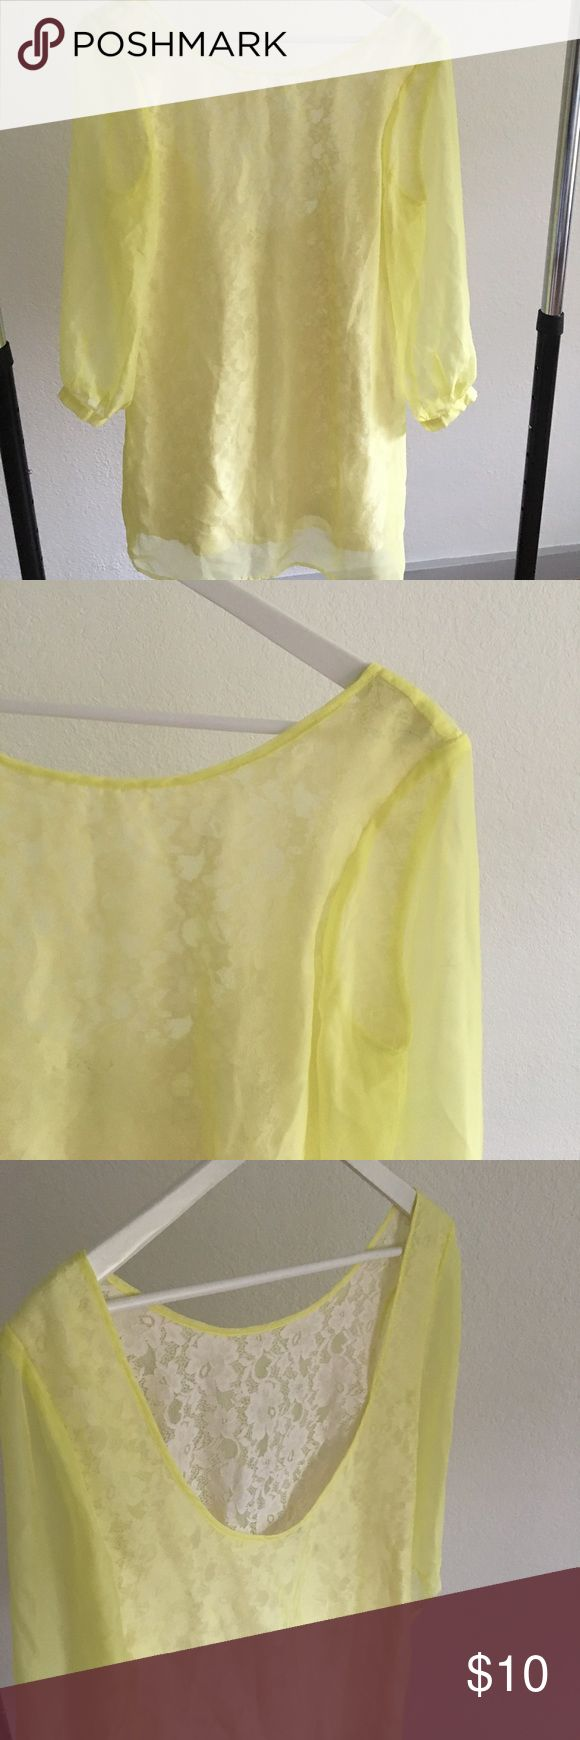 Light yellow lace inside summer dress Worn couple times. Light yellow dress with lace inside. Perfect for a vacation:) Forever 21 Dresses Mini